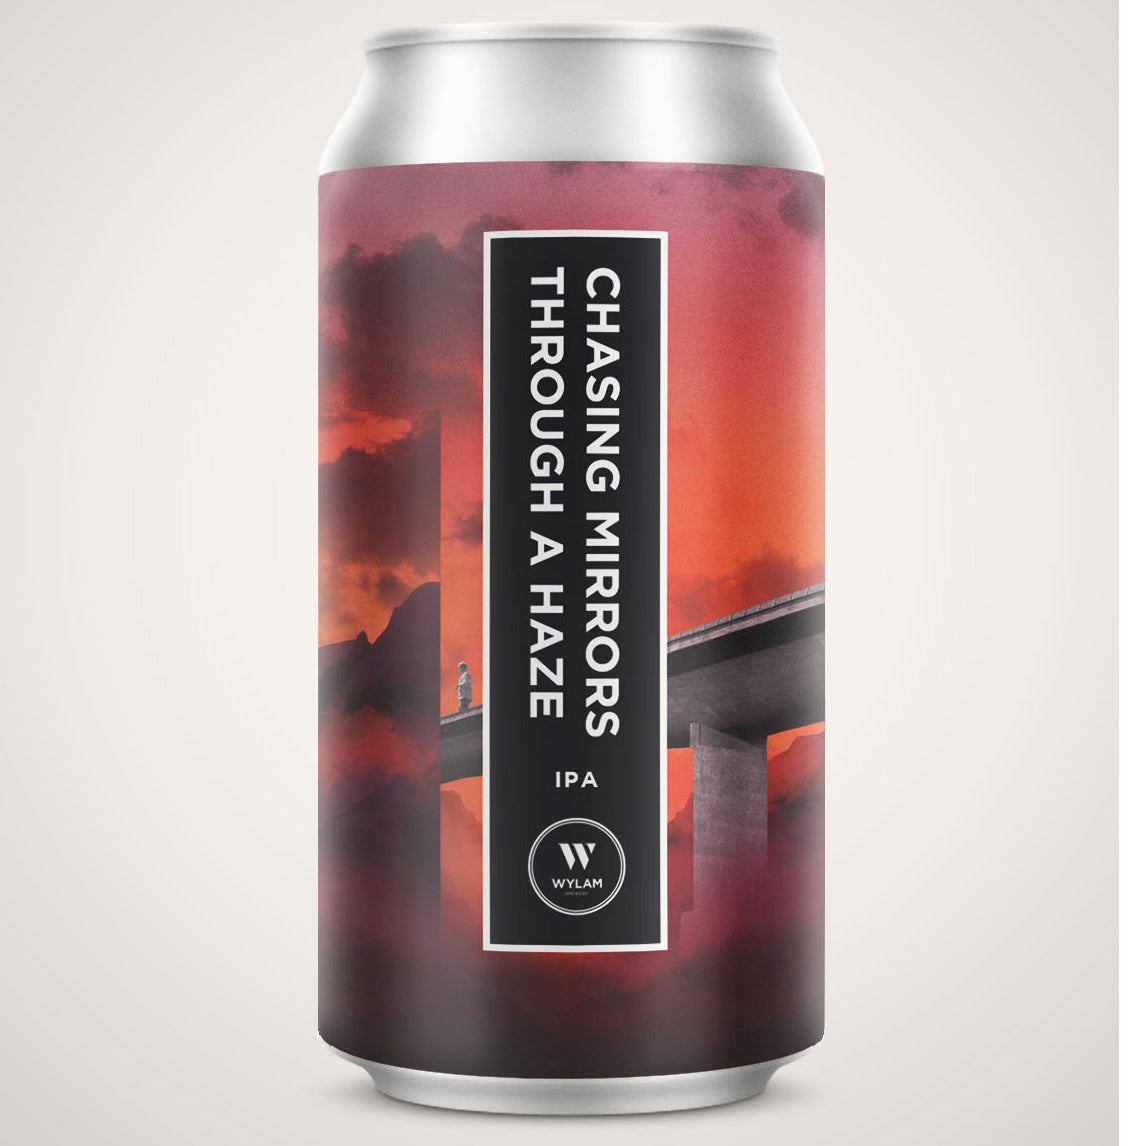 Wylam Brewery - Chasing Mirrors Through a Haze - IPA - 440ml Can